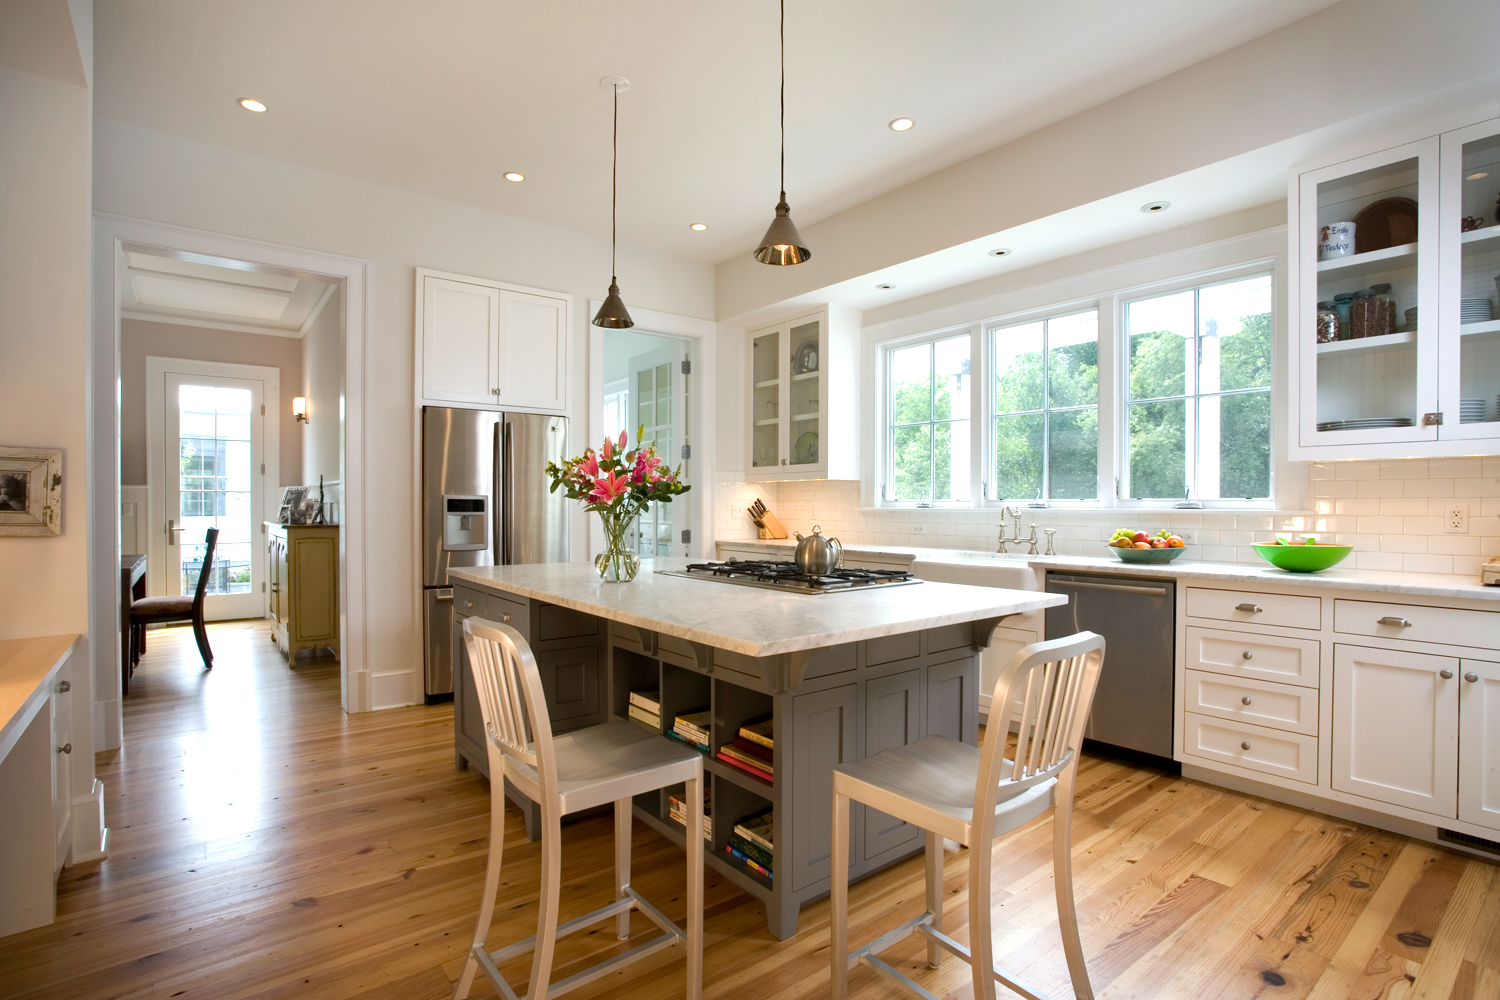 The kitchen features a farm sink and island cooktop with inset cabinet doors and drawer fronts.